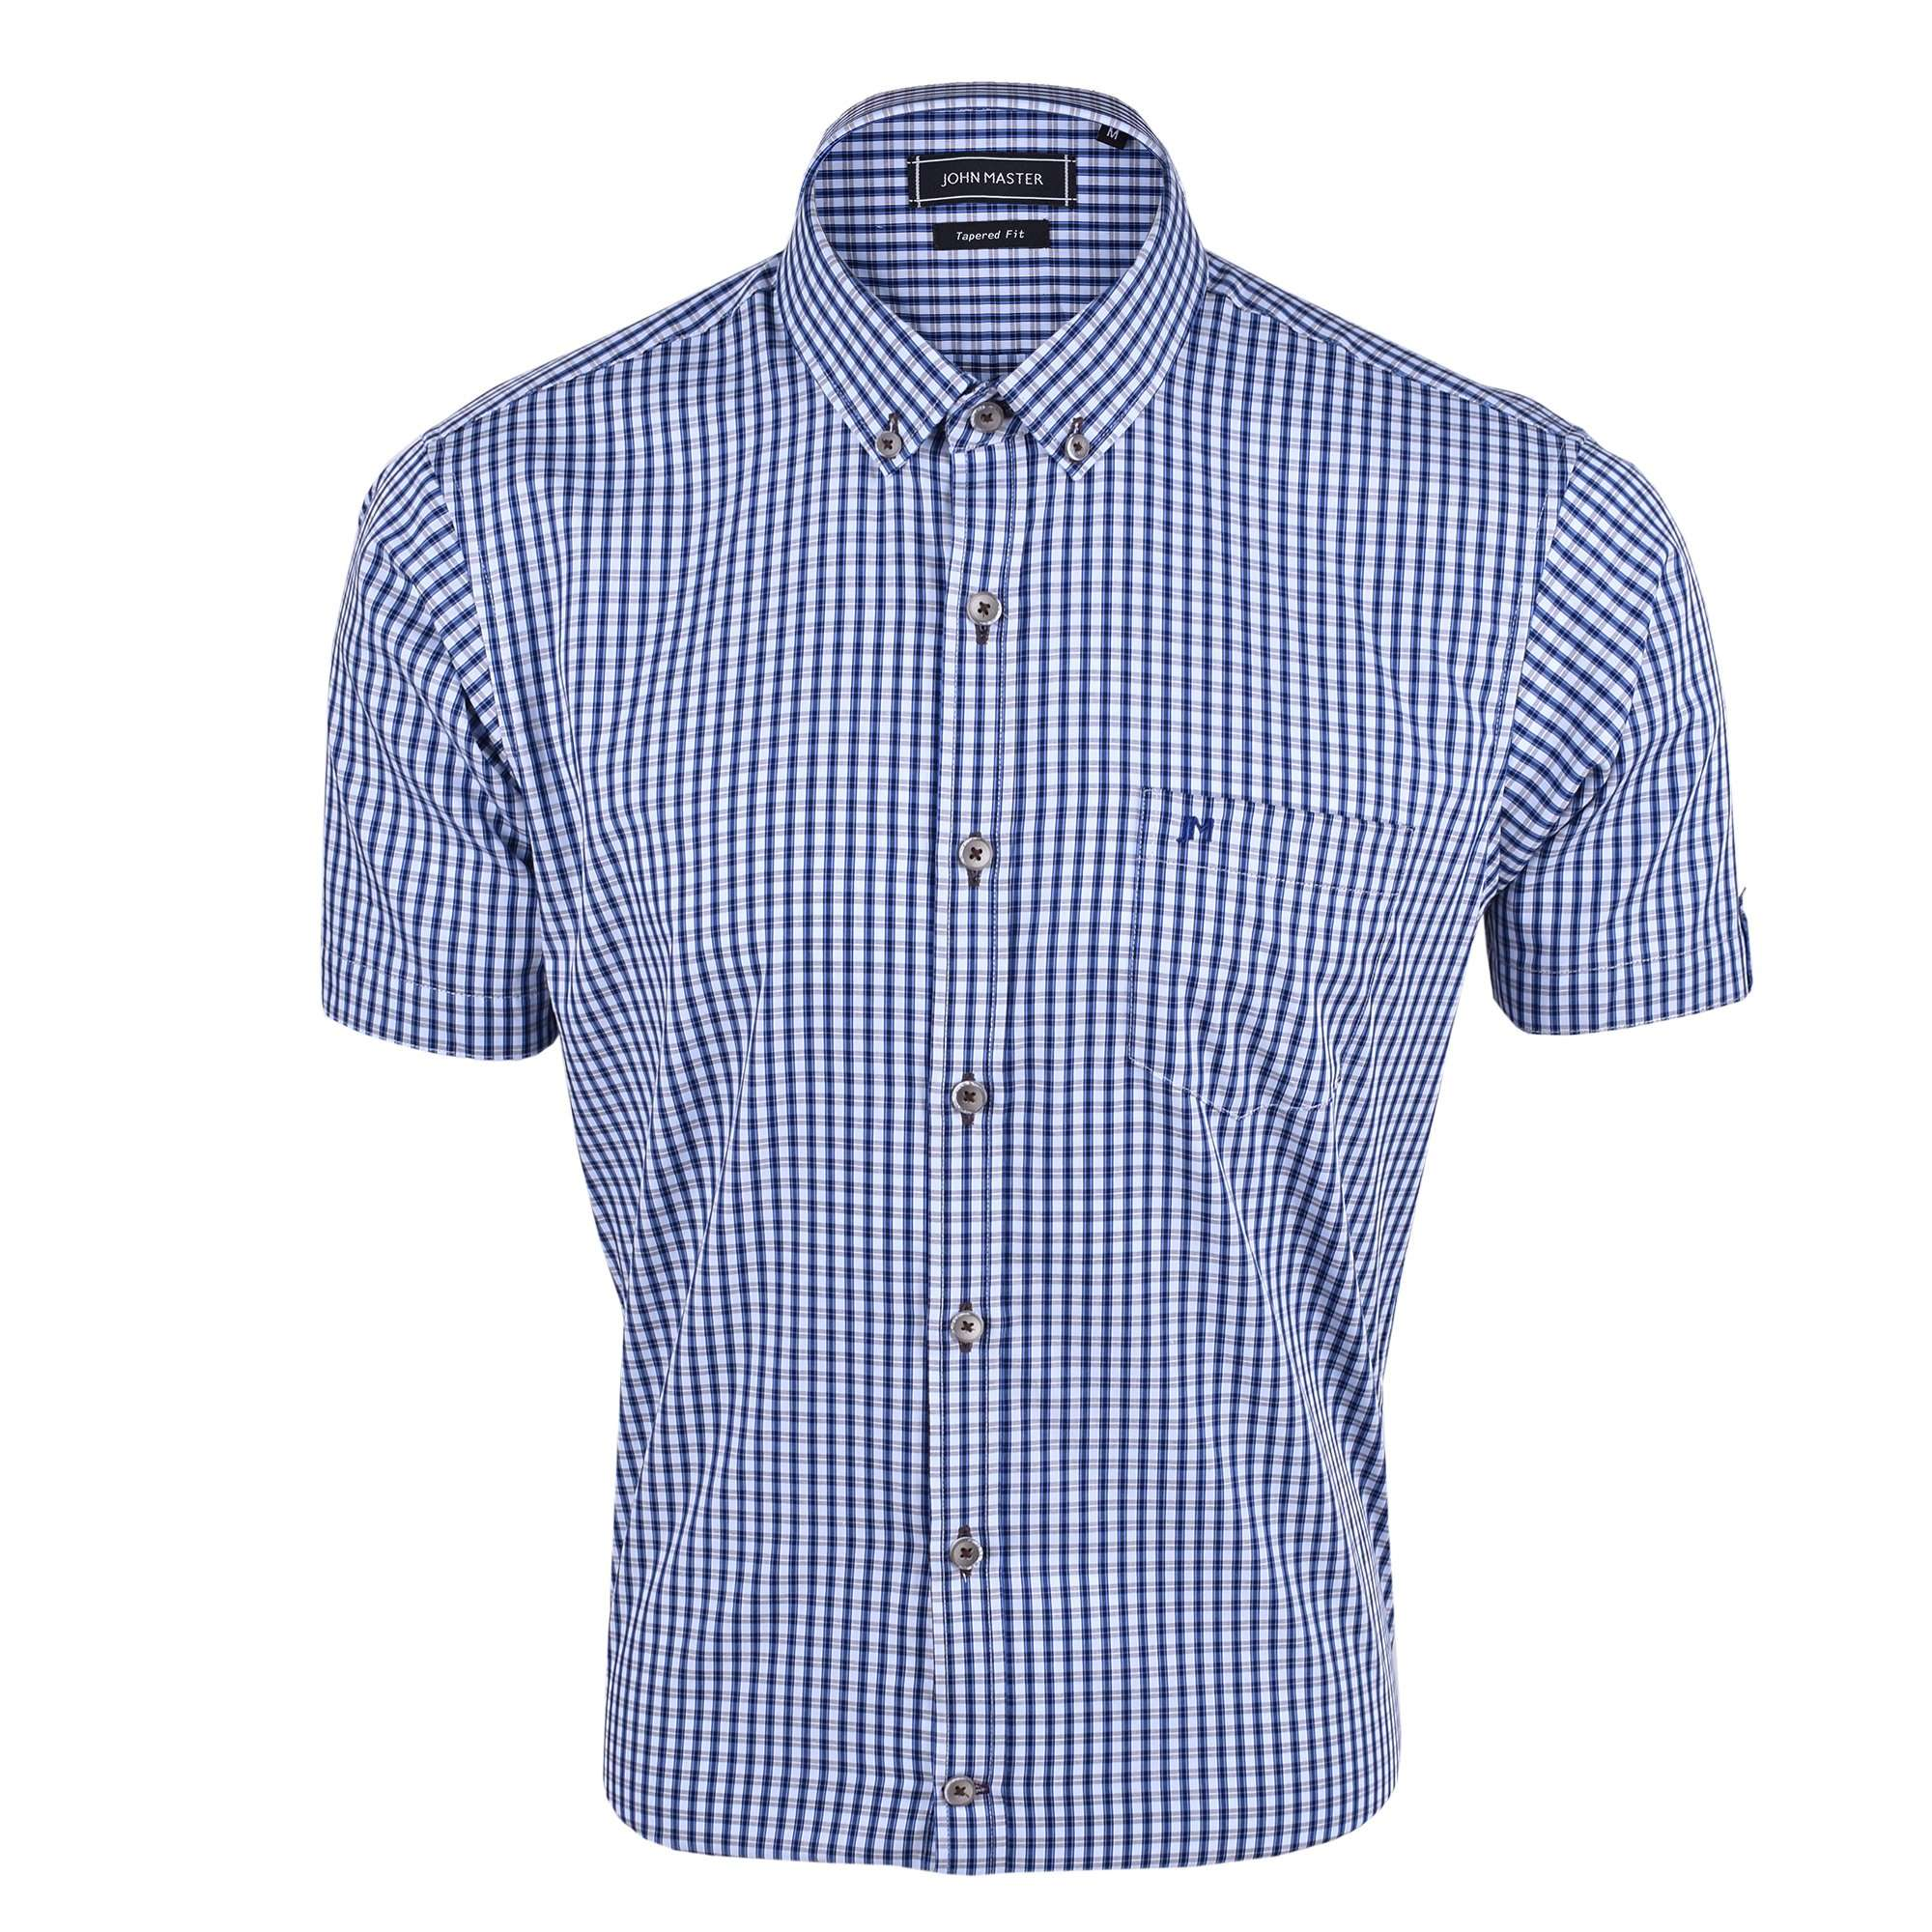 John Master Business Regular Short Sleeve Shirt - Blue 7067927-L5 : Buy John Master online at CMG.MY